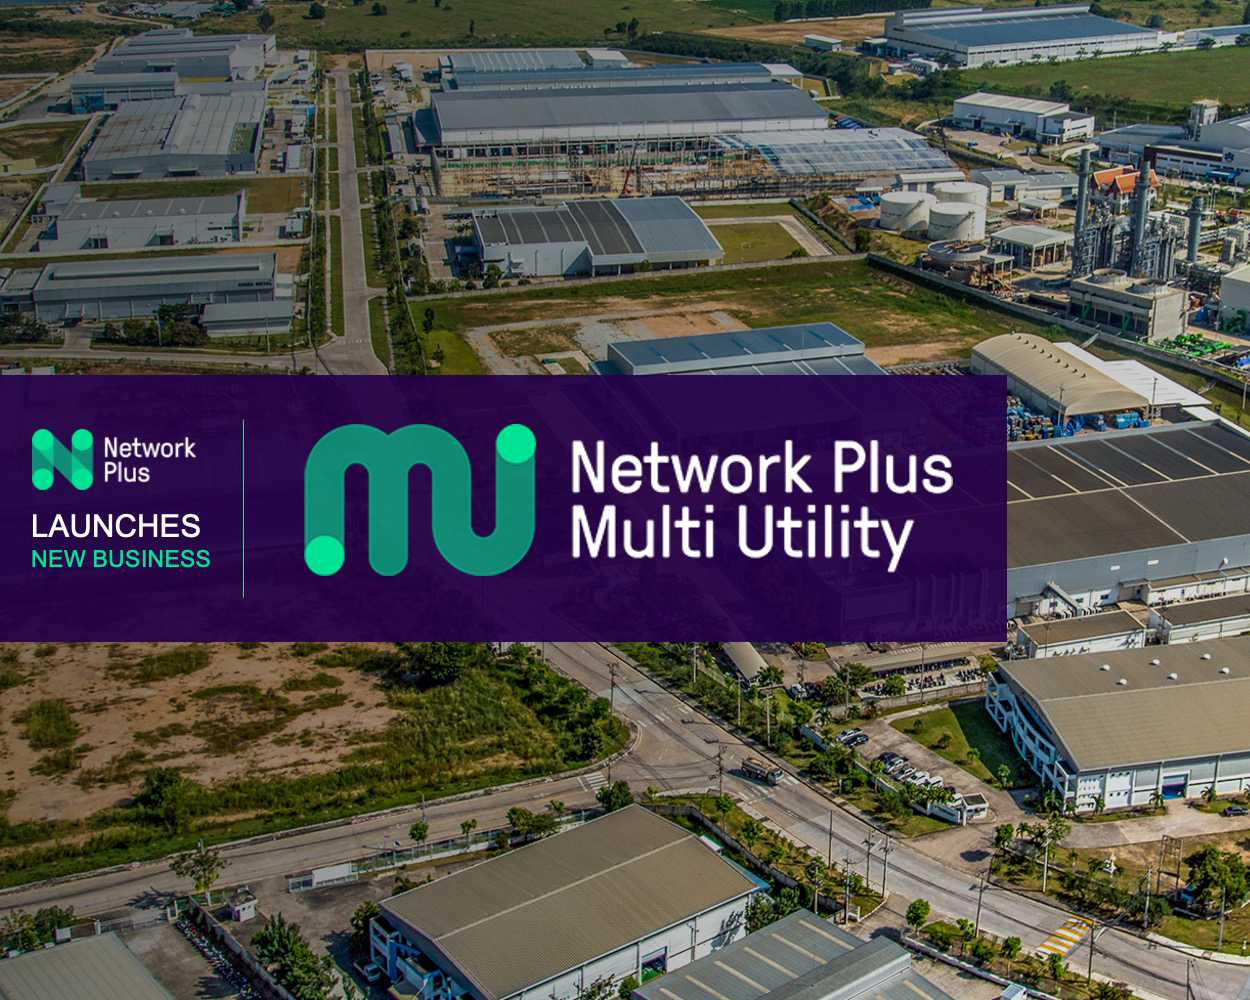 Network Plus launches new business – Network Plus Multi Utility